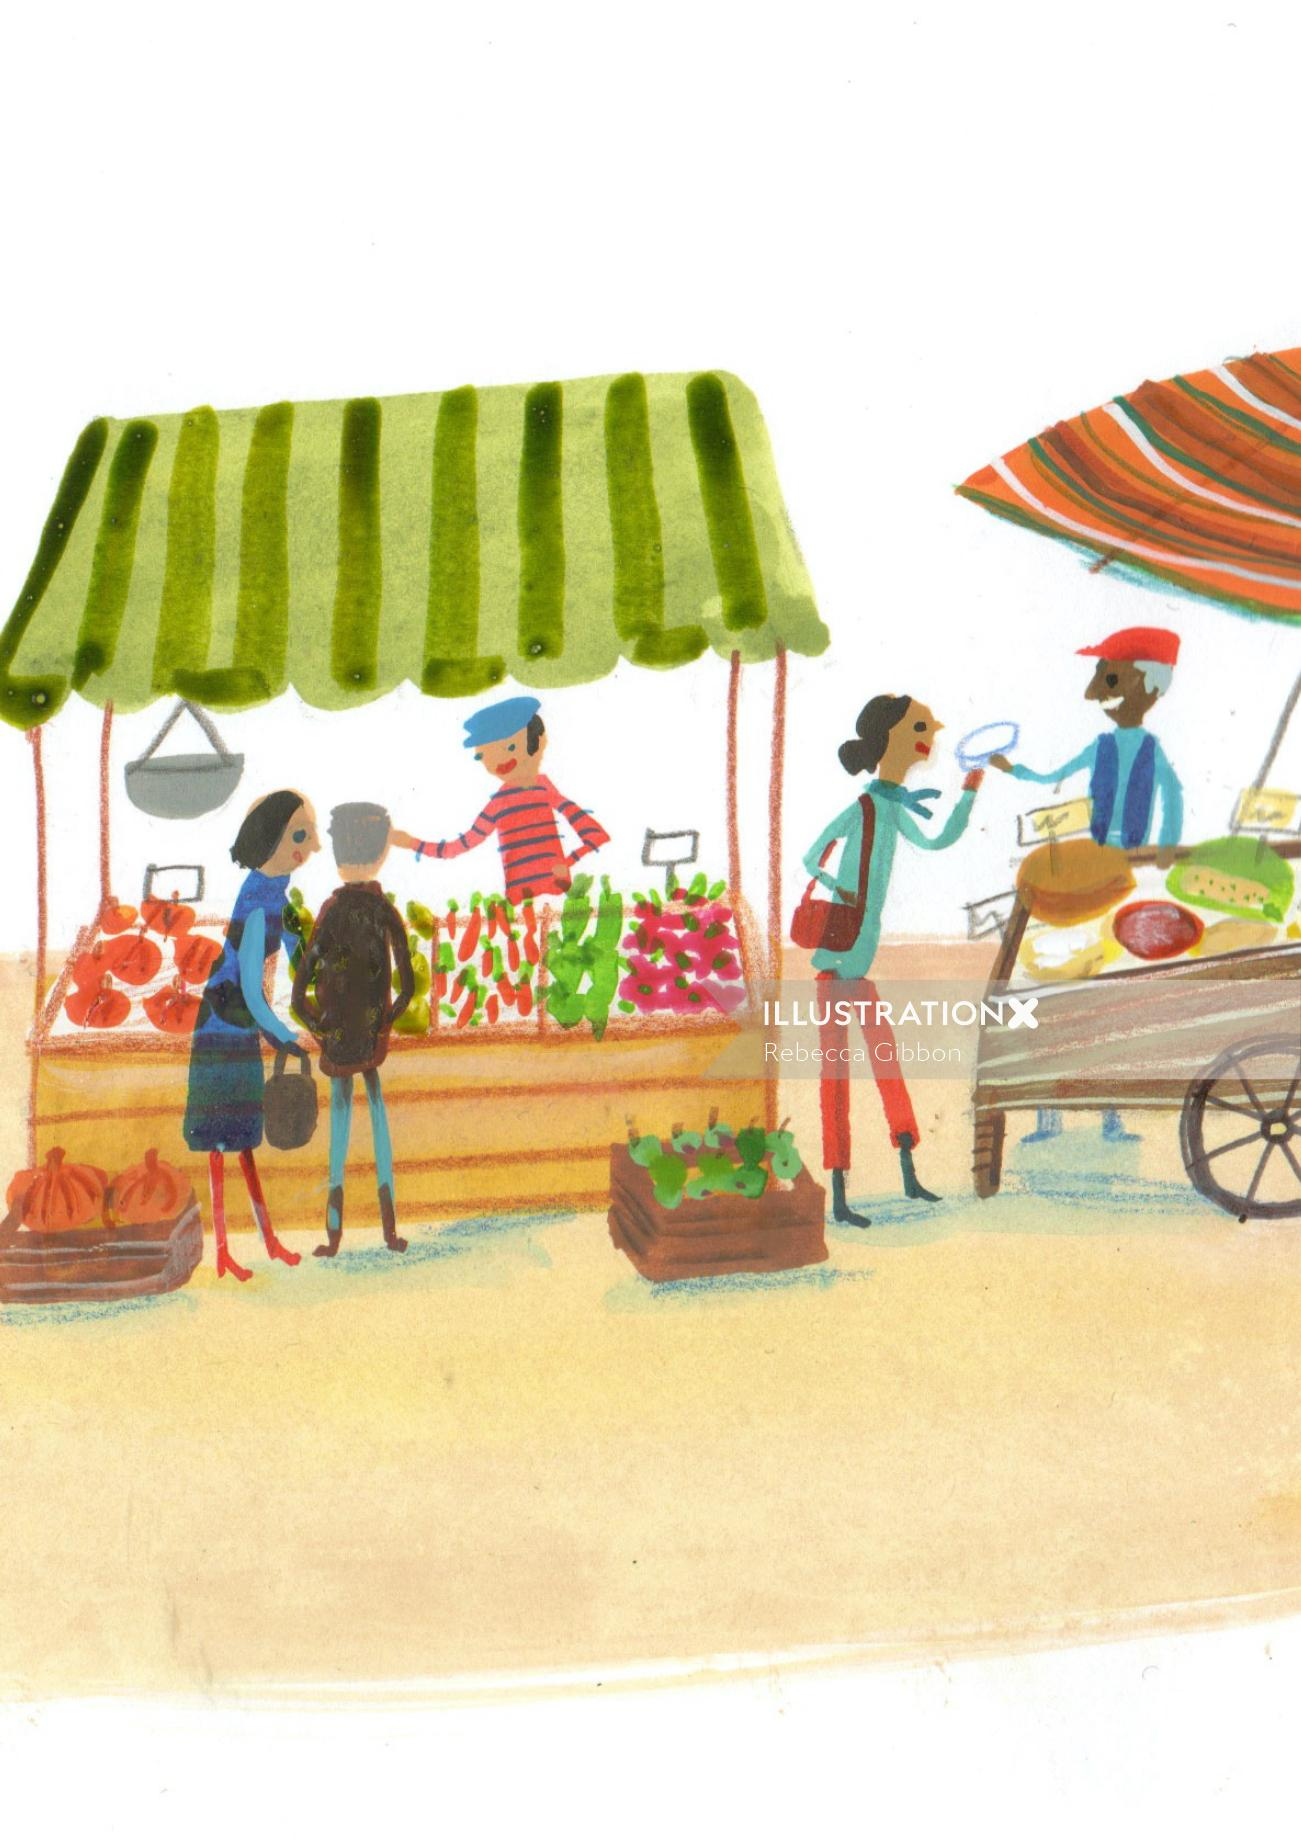 People shopping in the market